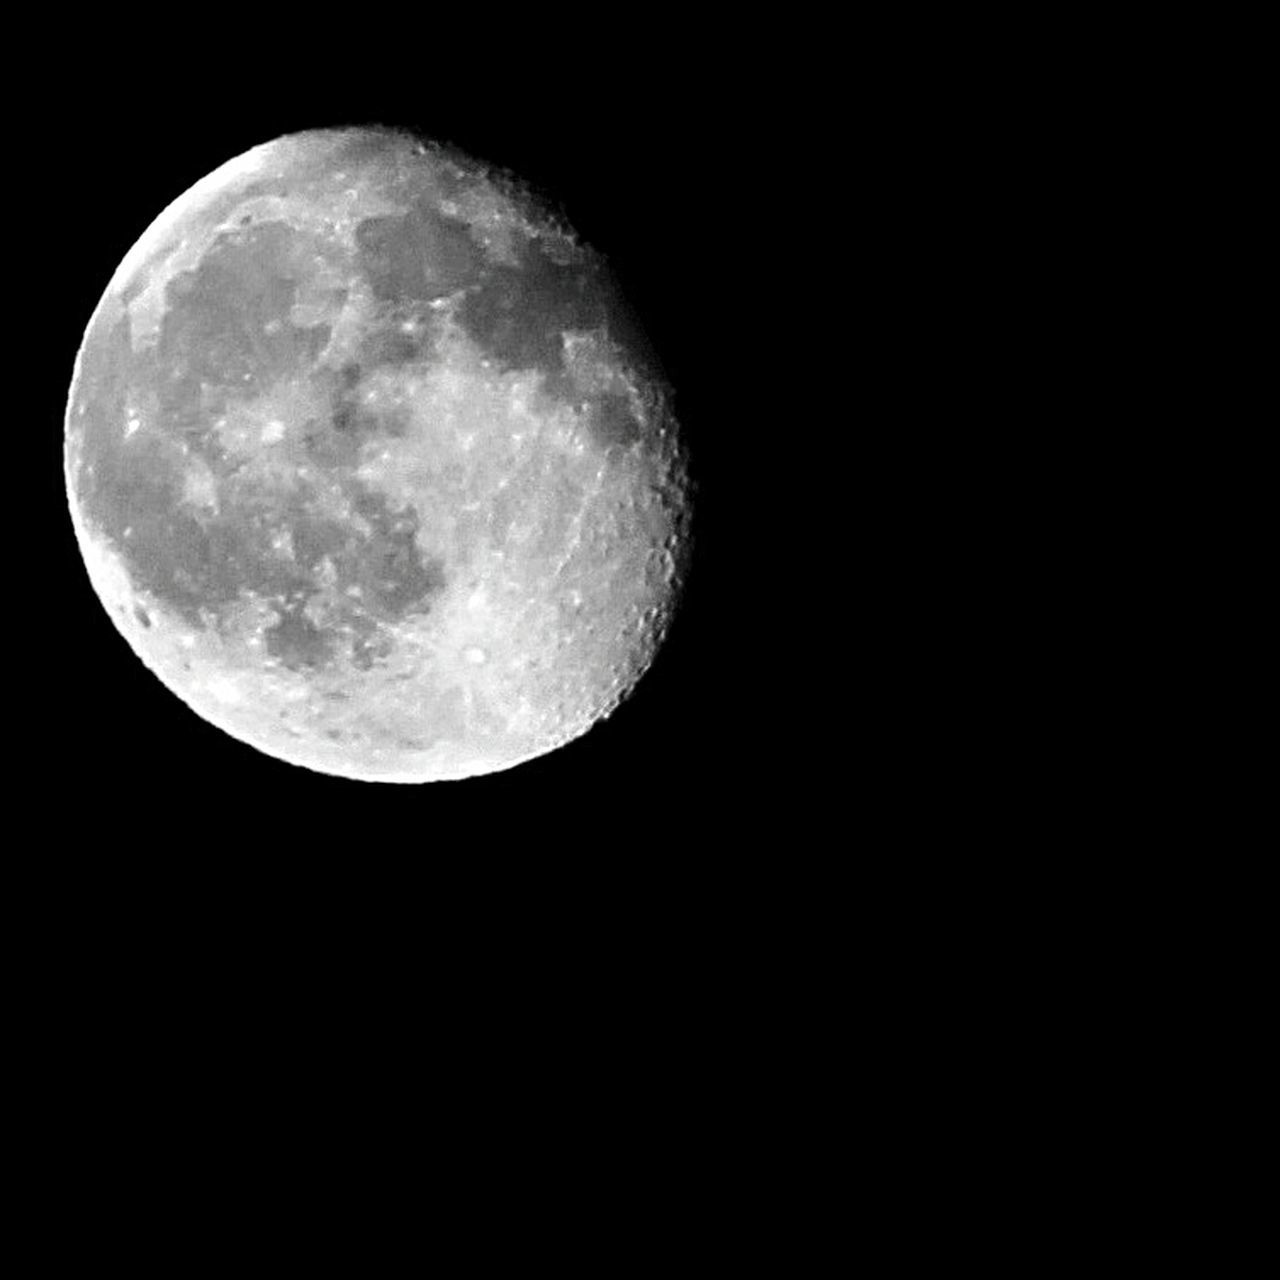 night, moon, astronomy, moon surface, space exploration, majestic, beauty in nature, nature, planetary moon, space, low angle view, scenics, no people, tranquility, outdoors, discovery, sky, clear sky, half moon, close-up, satellite view